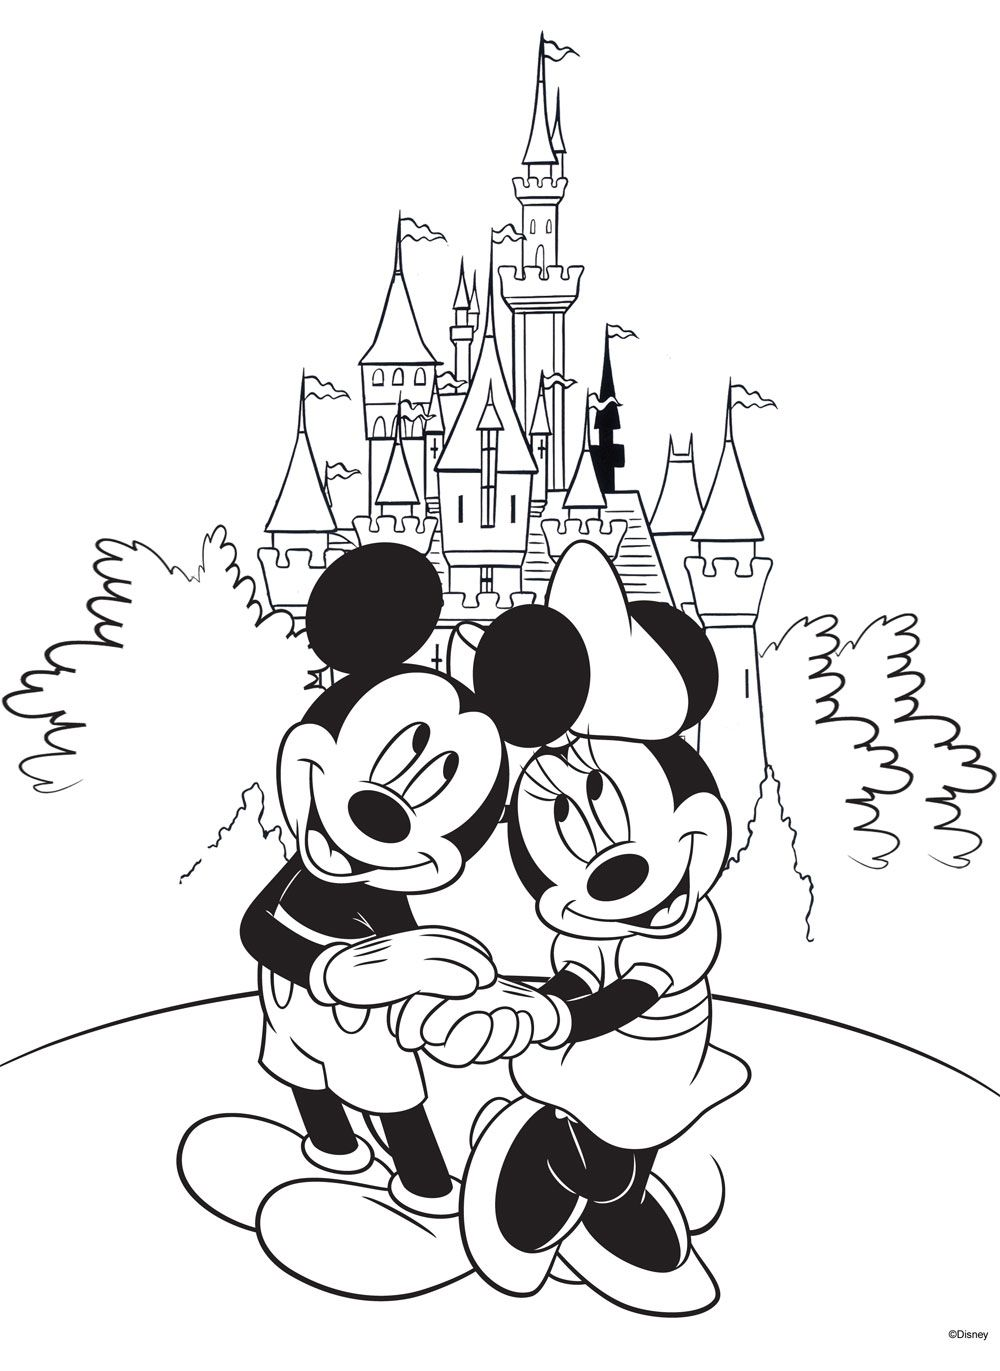 Free Disney Coloring Page! #Printable | Disney coloring ... | coloring pages disney online free